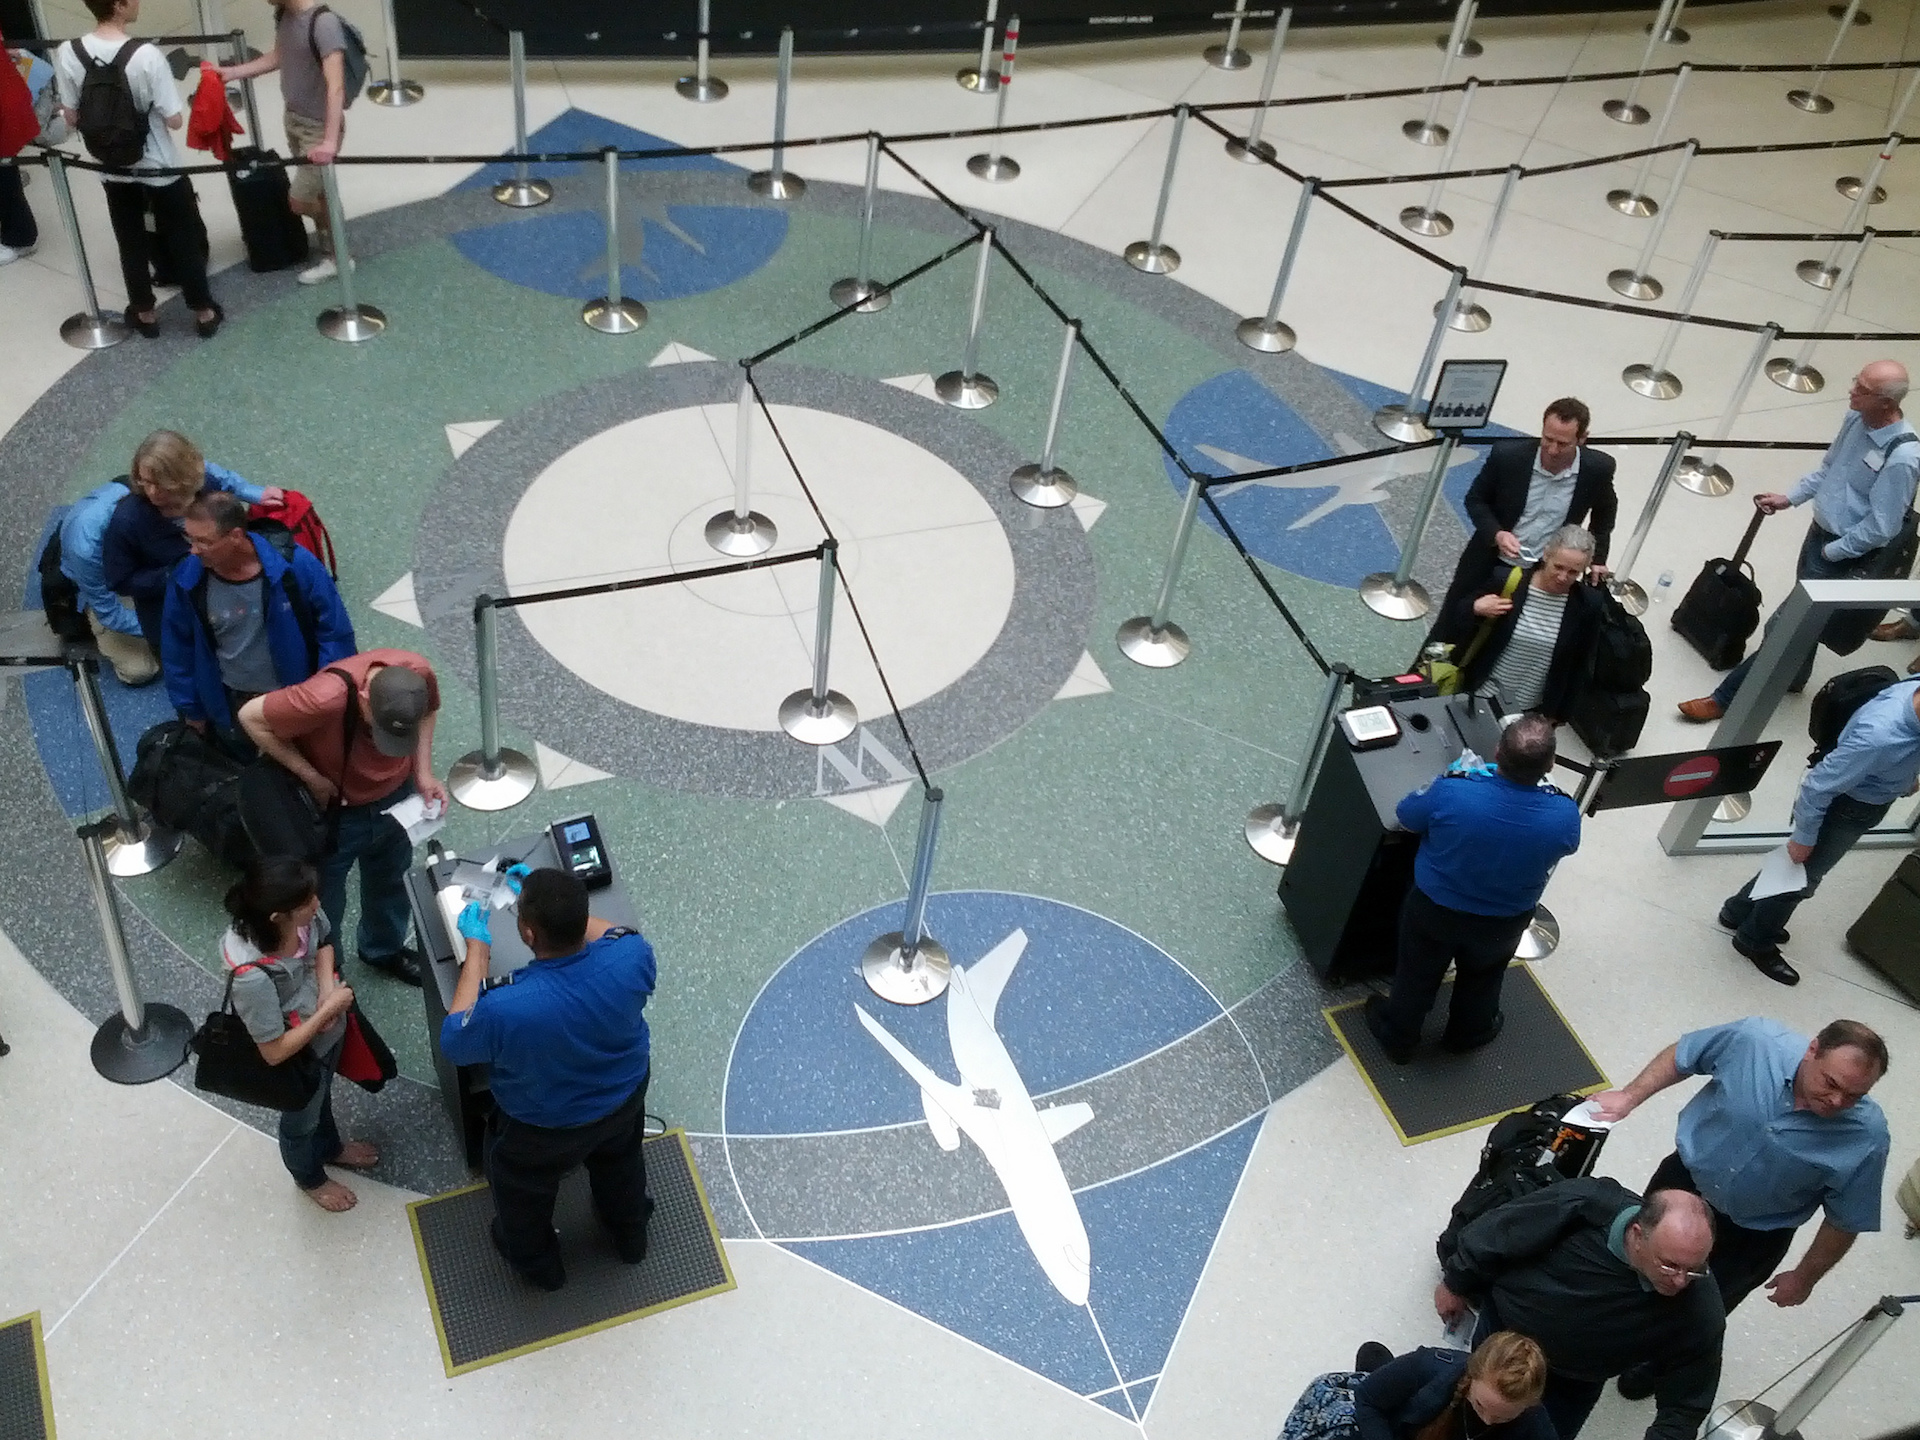 TSA needs to continue testing airport scanning tech after deployment, watchdog says